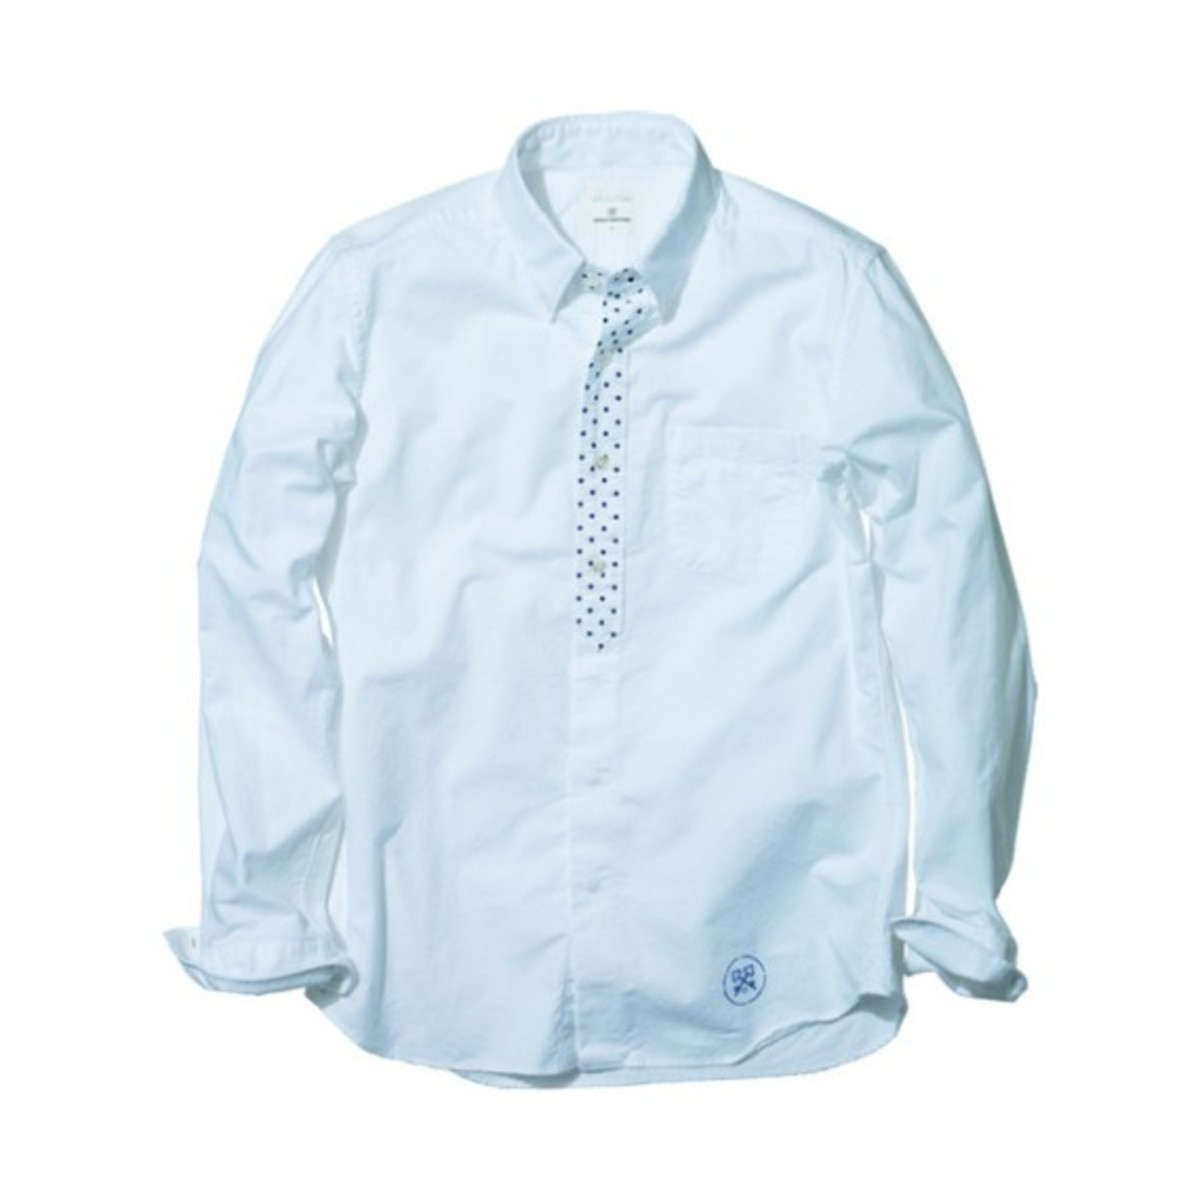 sophnet-and-uniform-experiment-aw-2010-shirts-5